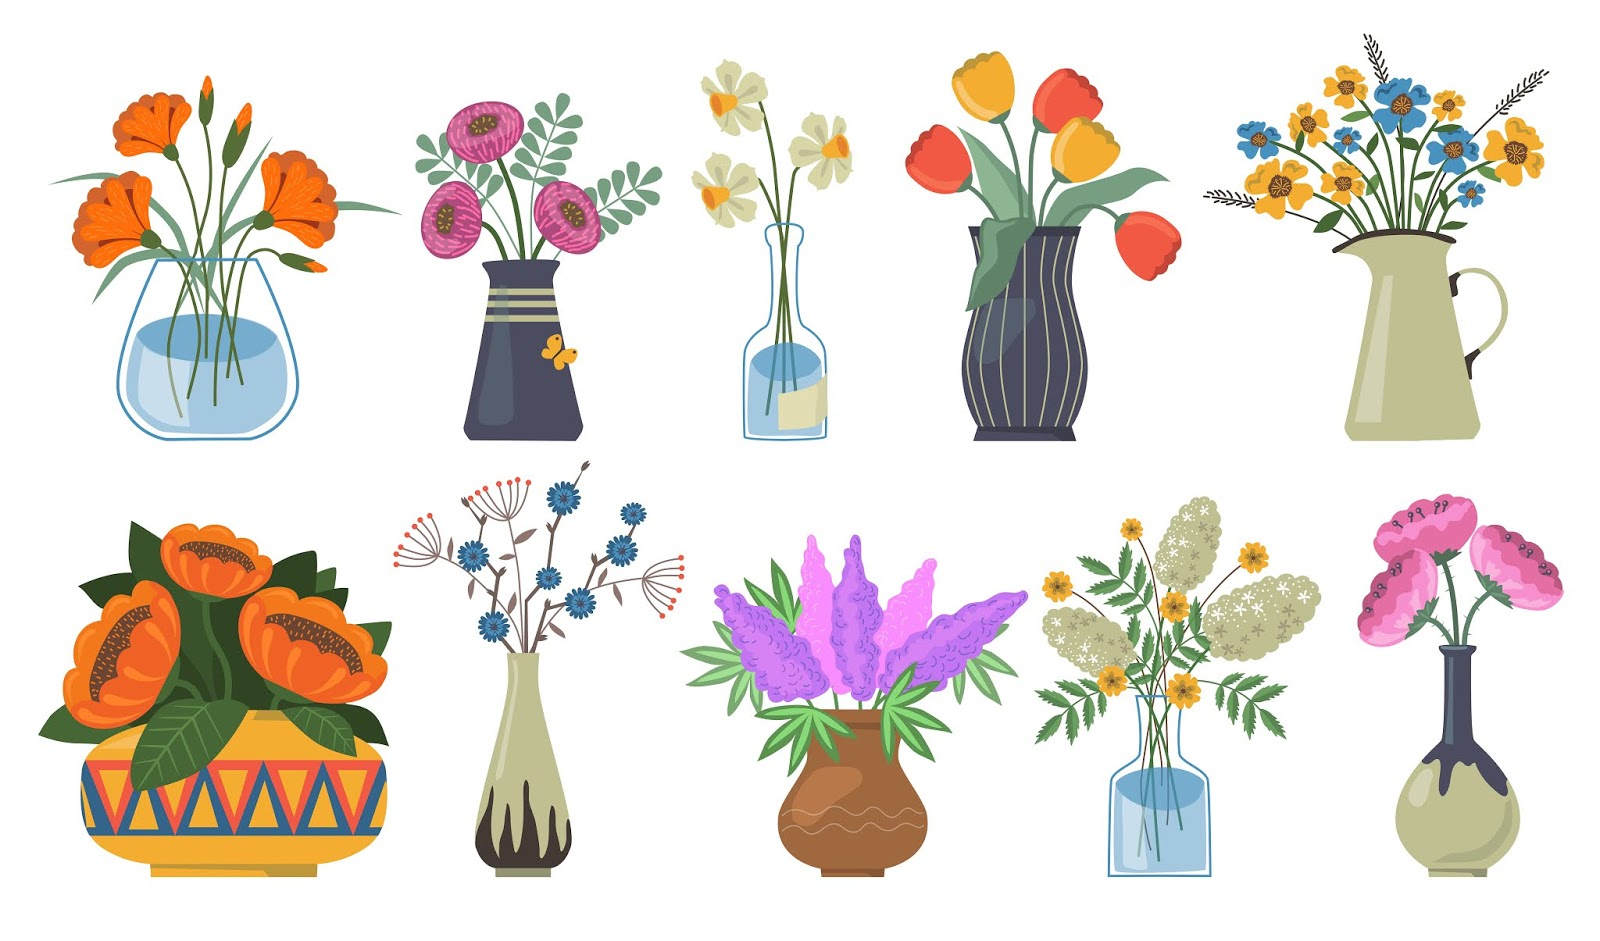 Bouquet Of Flowers Set Free Download Vector CDR, AI, EPS and PNG Formats